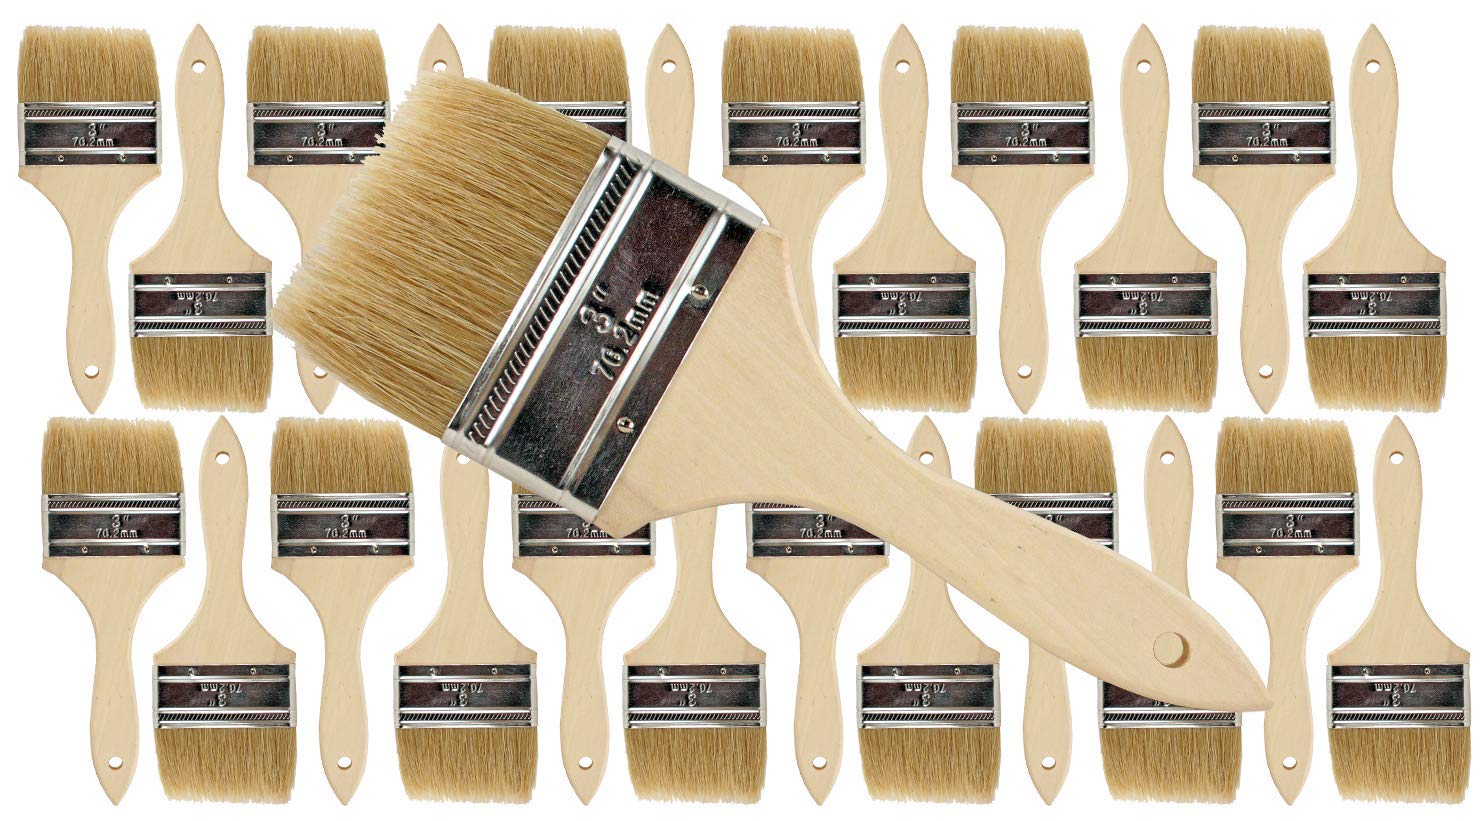 Pro Grade - Chip Paint Brushes - 24 Ea 3 Inch Chip Paint Brush by Pro Grade